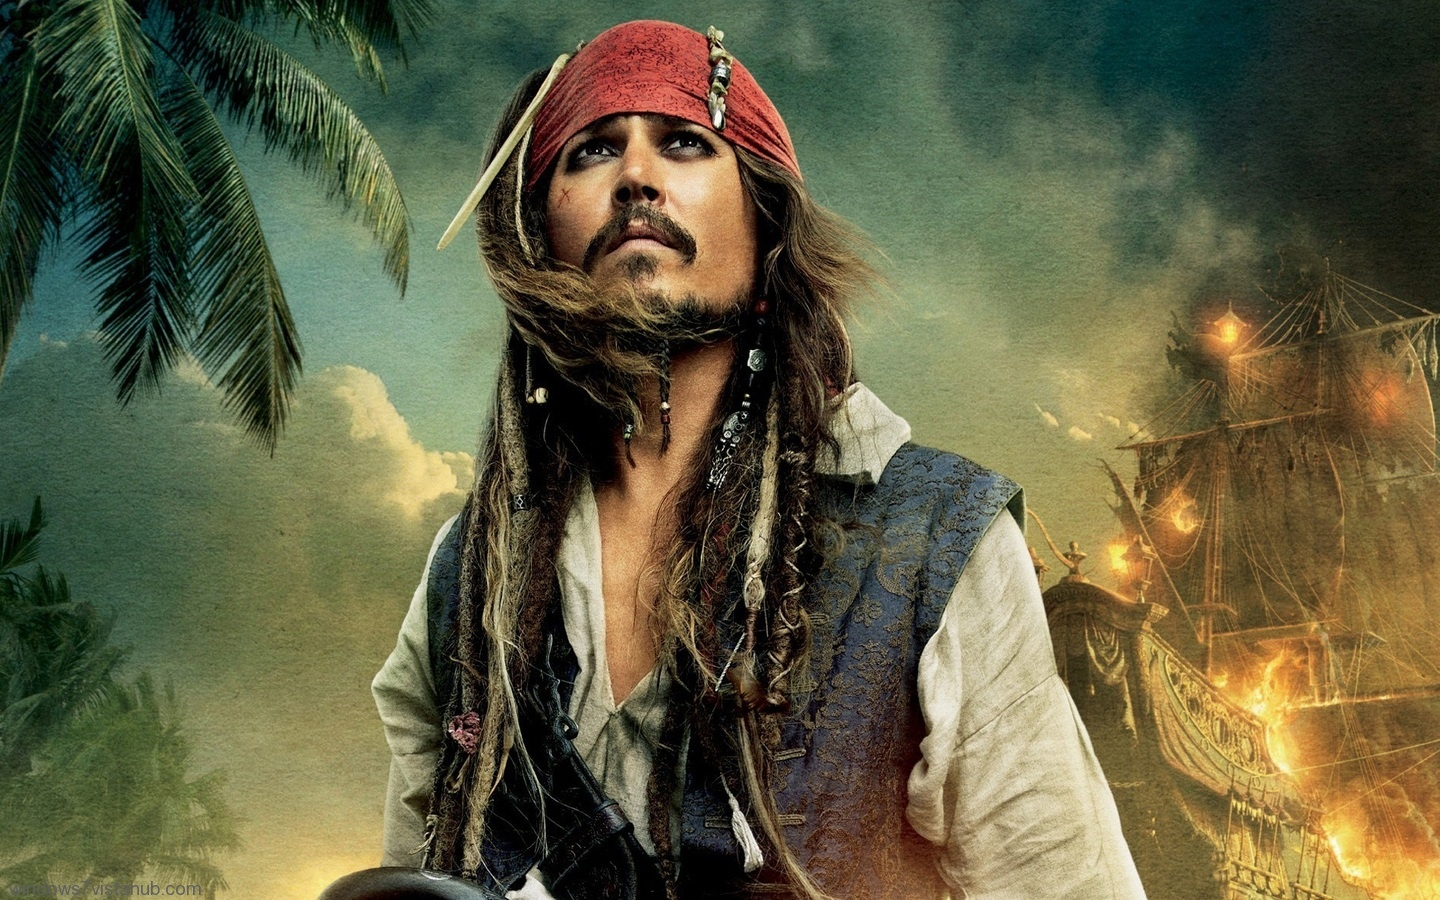 What is the name of the pirate in Pirates of the Caribbean?